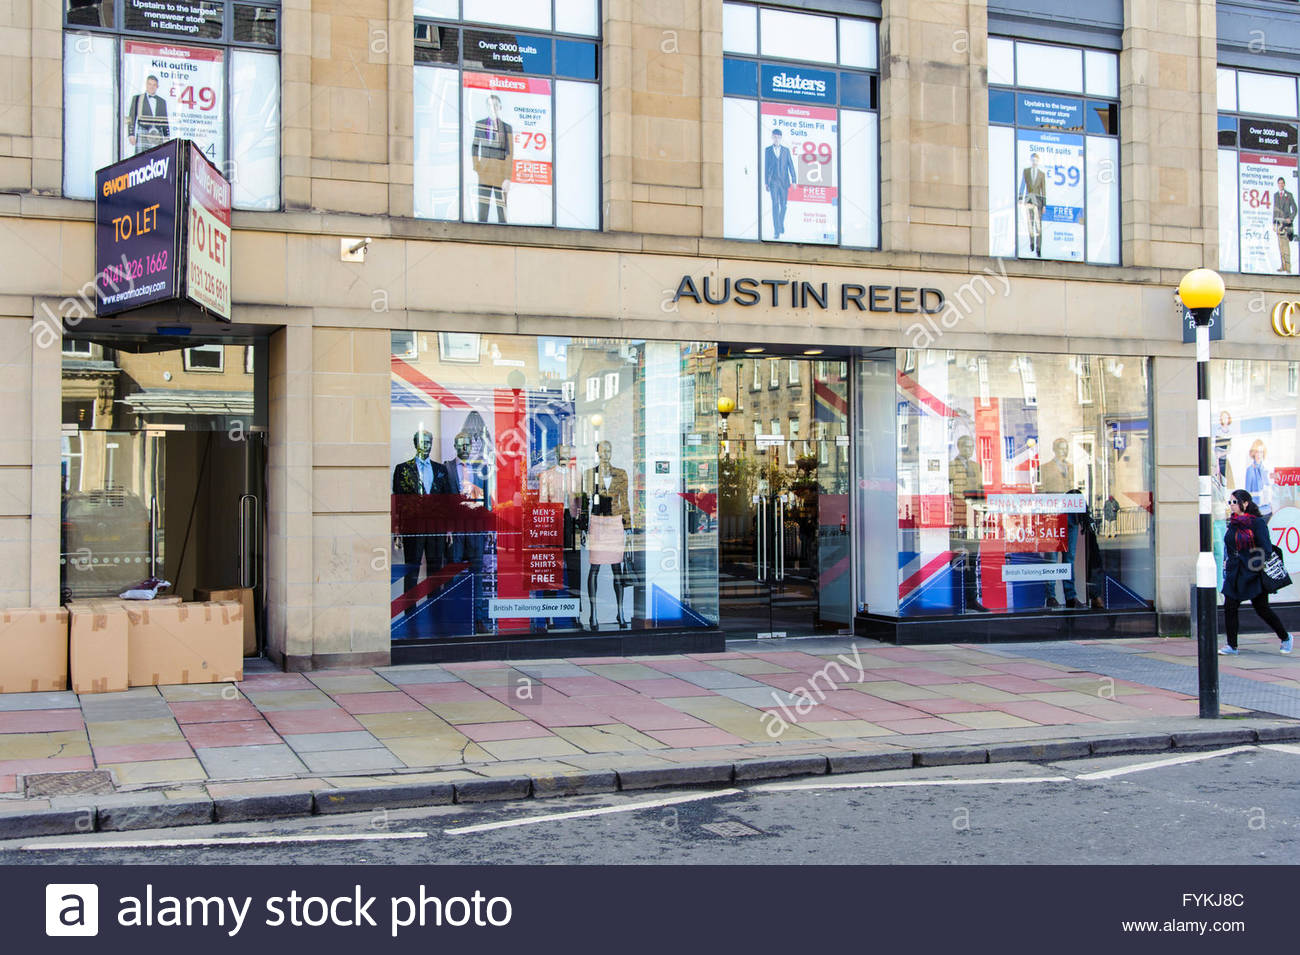 Austin Reed Edinburgh